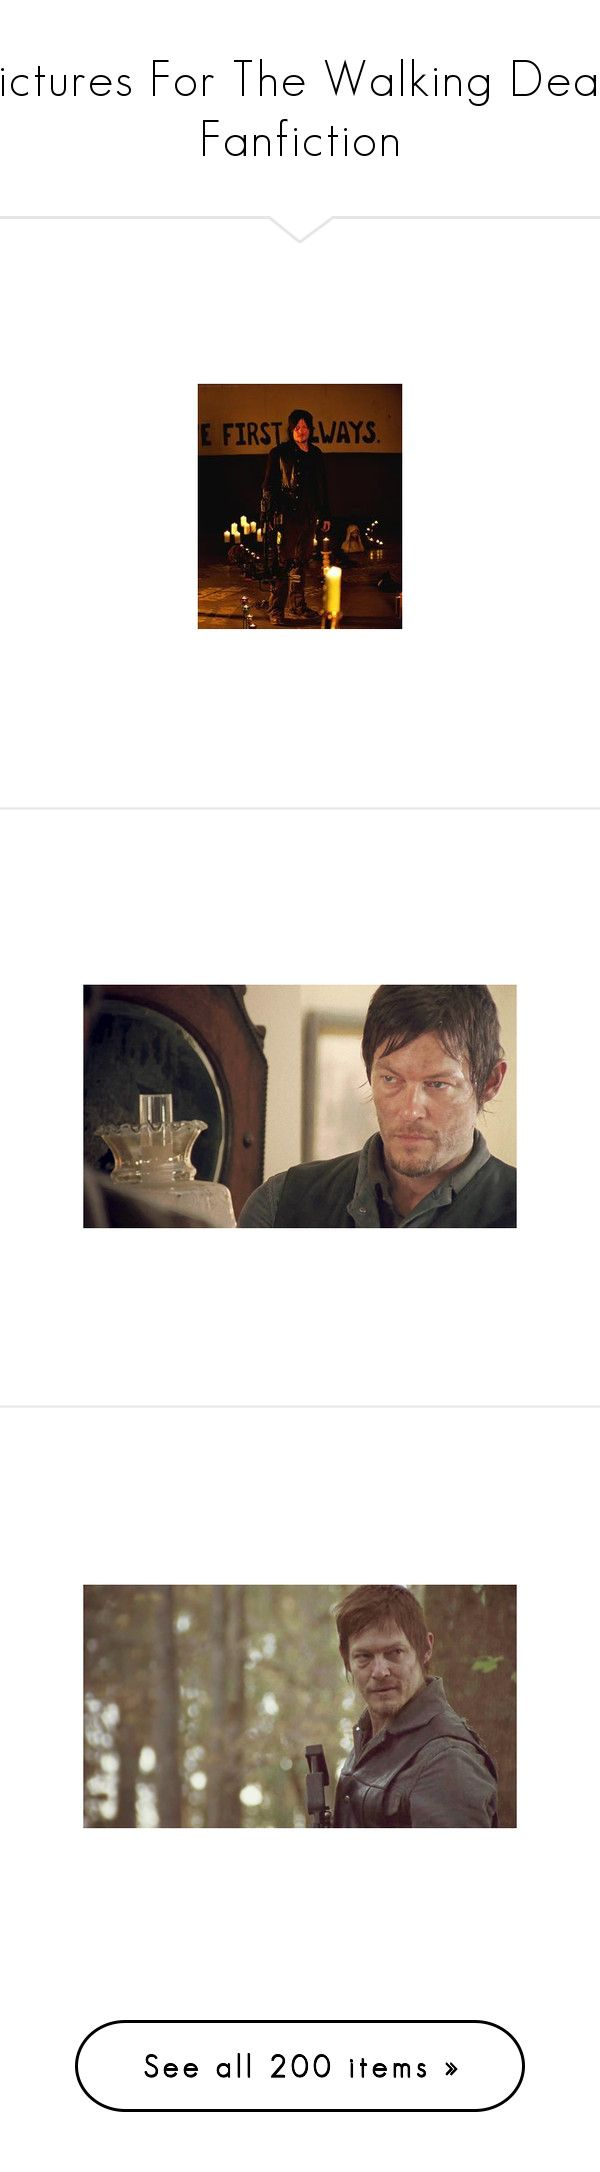 """""""Pictures For The Walking Dead Fanfiction"""" by blaizeg ❤ liked on Polyvore featuring home, kitchen & dining, the walking dead, backgrounds, pictures, places, daryl dixon, norman reedus, people and twd"""